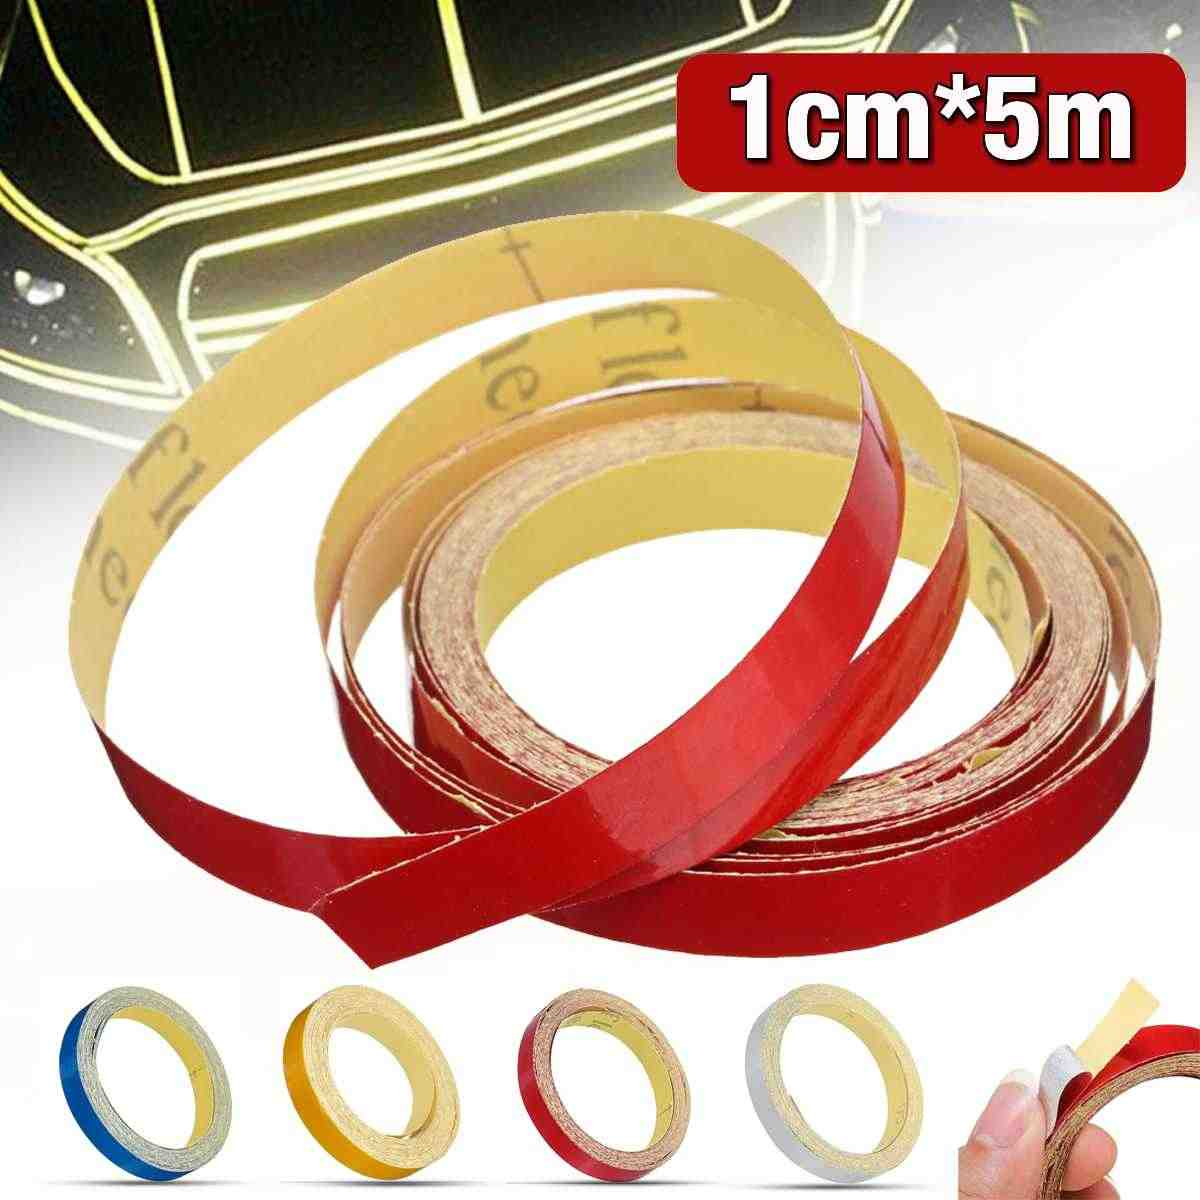 1 cm * 5 m Glossy Motorhelm Reflecterende Decoratieve Veiligheid Tape DIY Sticker Decal Roll Strip Motorfiets Auto reflector Tap